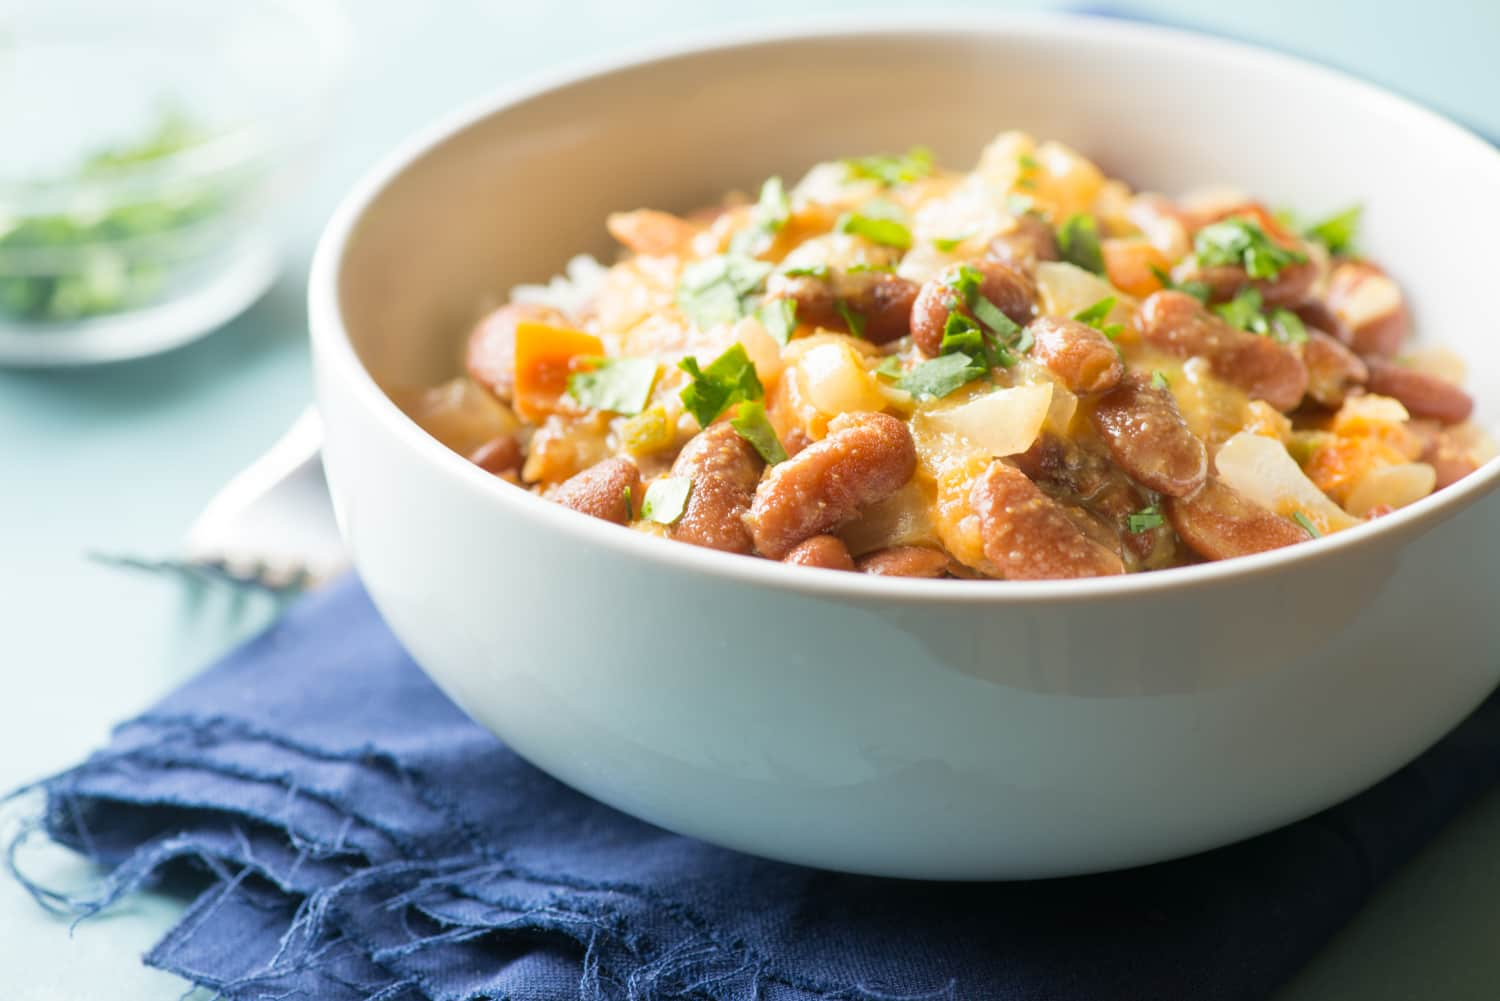 Recipe: Kidney Bean and Coconut Curry